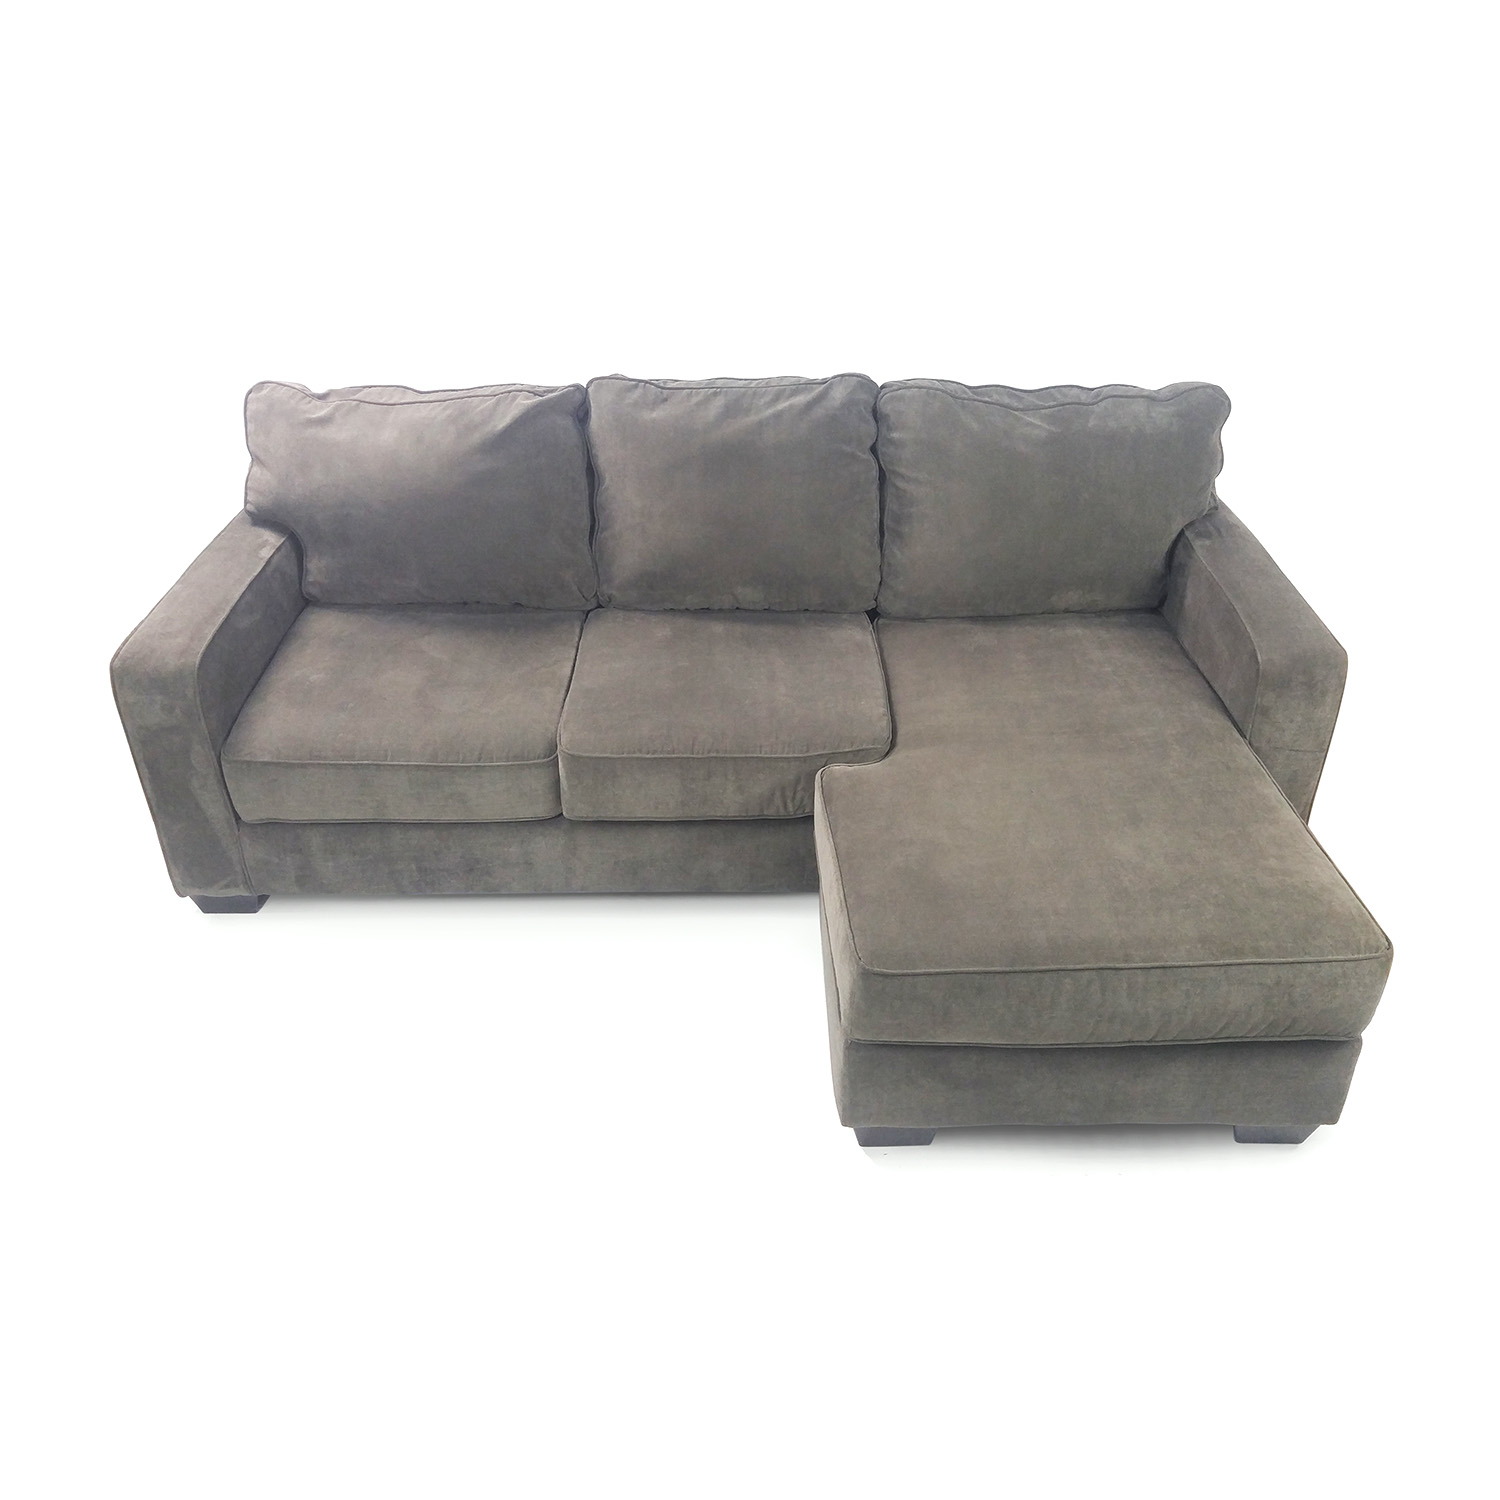 Hodan sofa chaise ashley furniture hodan marble sofa for Ashley chaise lounge sofa